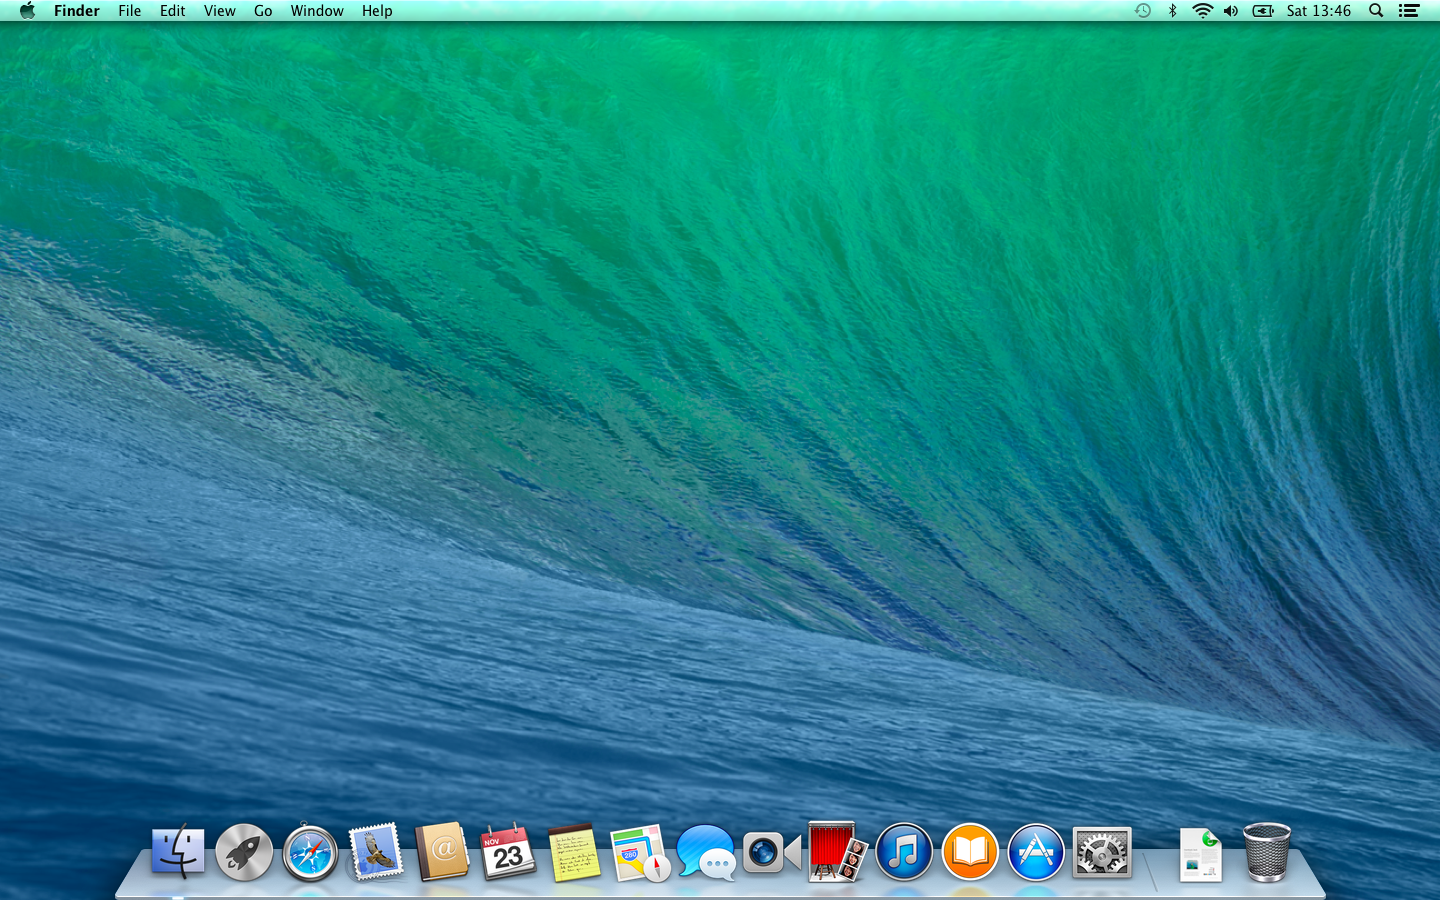 Mac OS X 10.9 default desktop